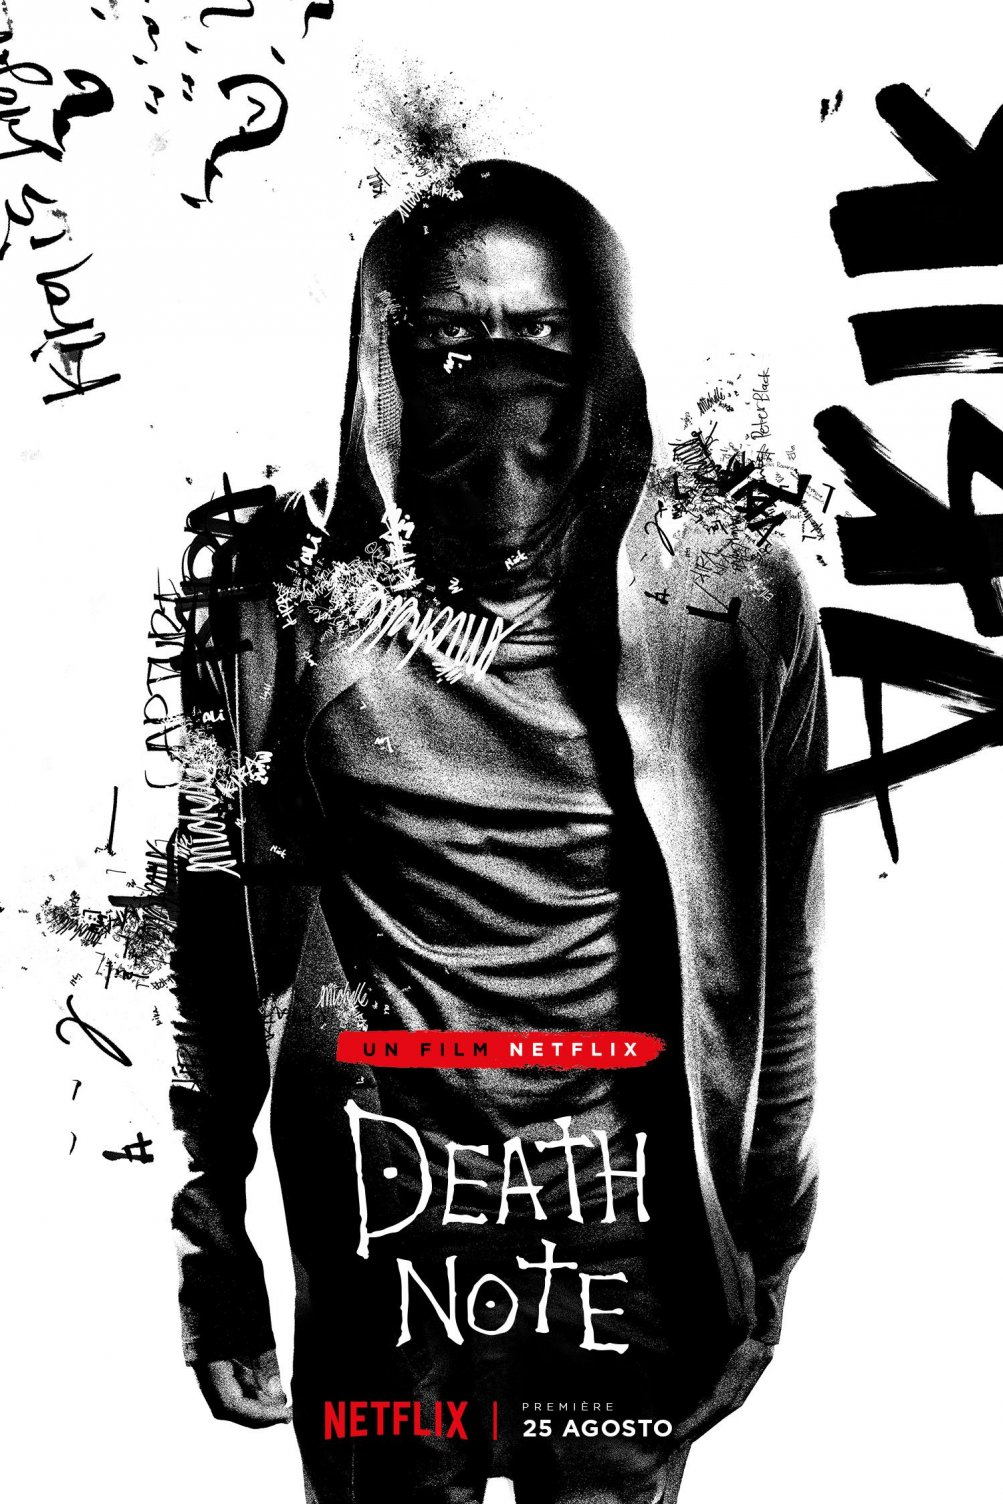 Death Note: il character poster di L, interpretato da Lakeith Stanfield